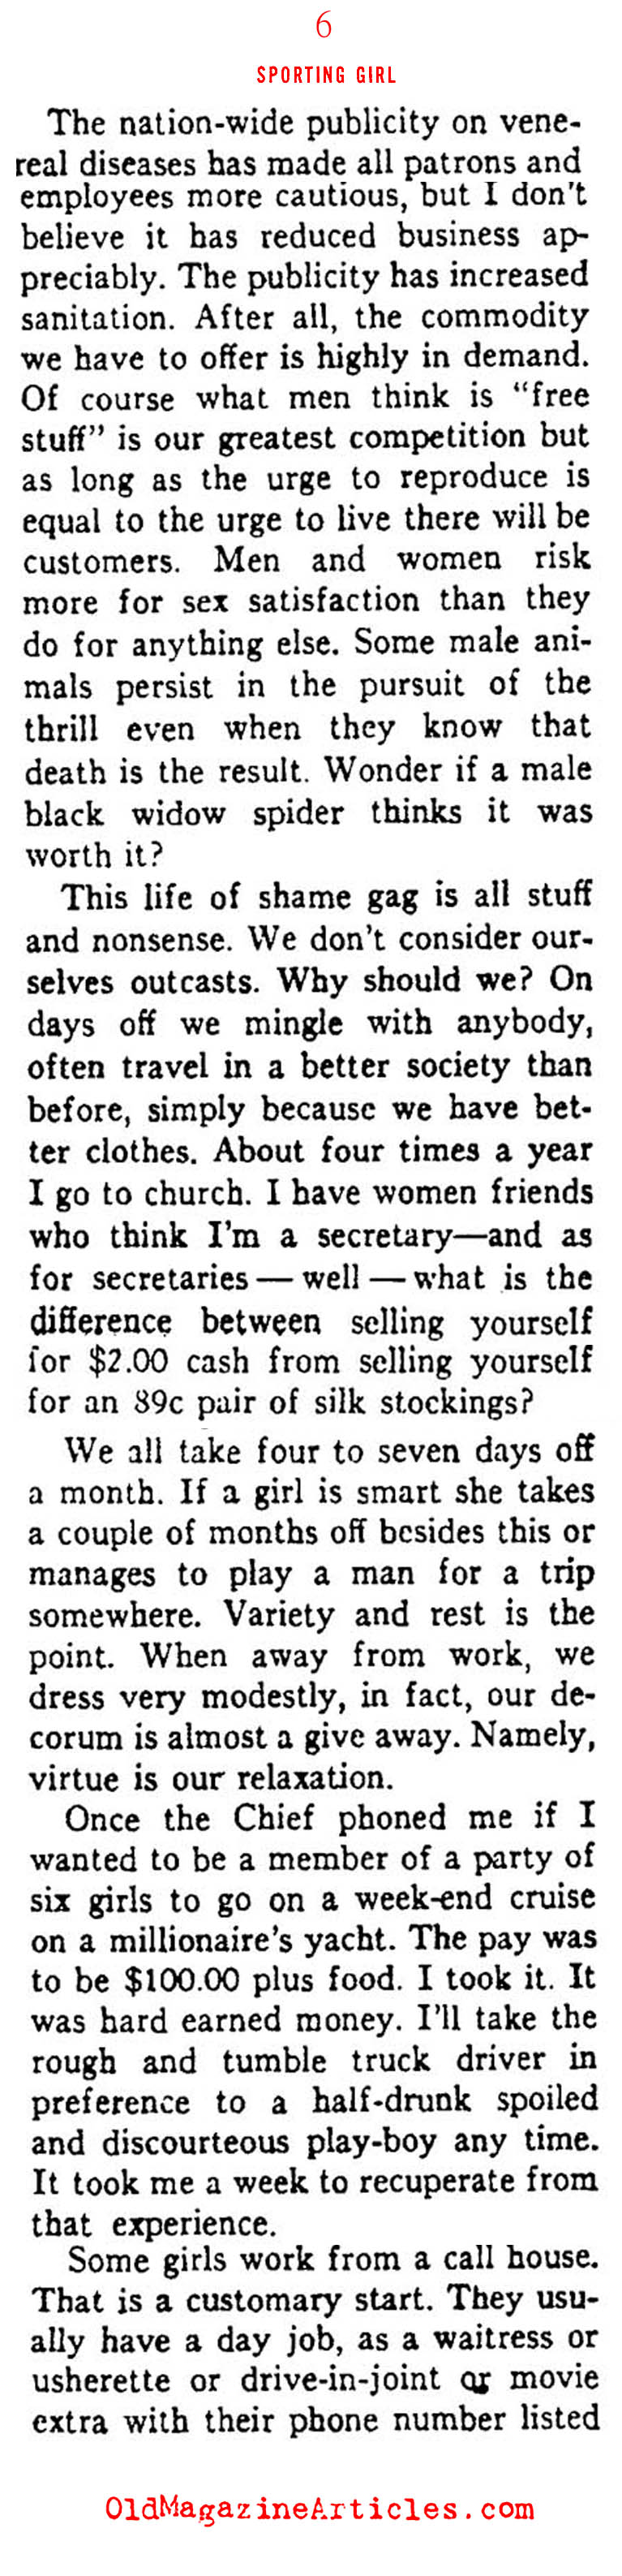 ''MY LIFE AS A PROSTITUTE'' (Ken Magazine, 1938)